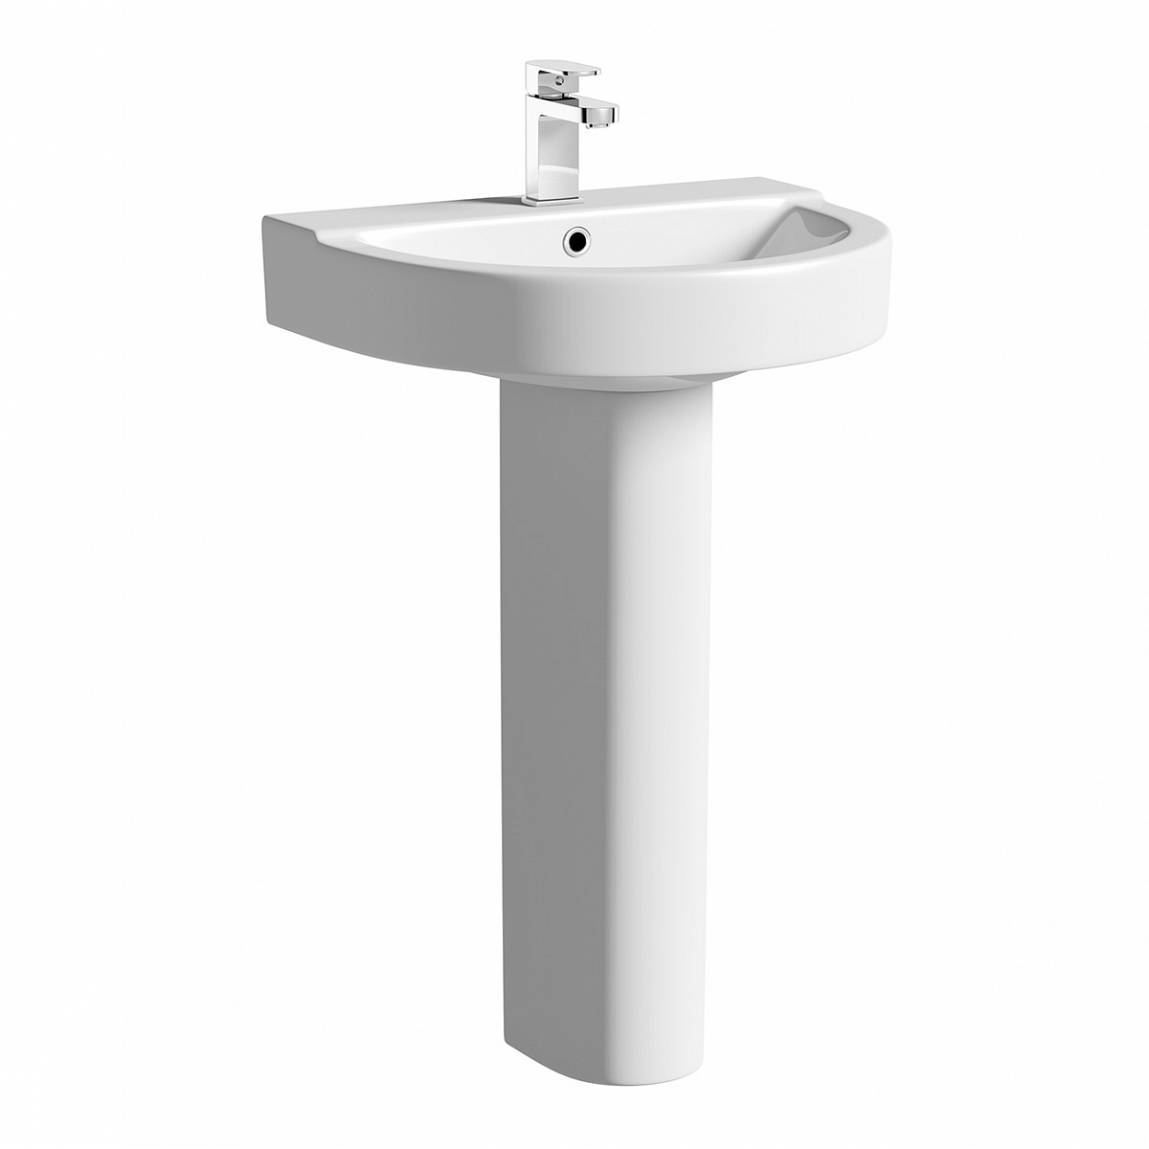 Image of Sorrento Basin & Pedestal Large